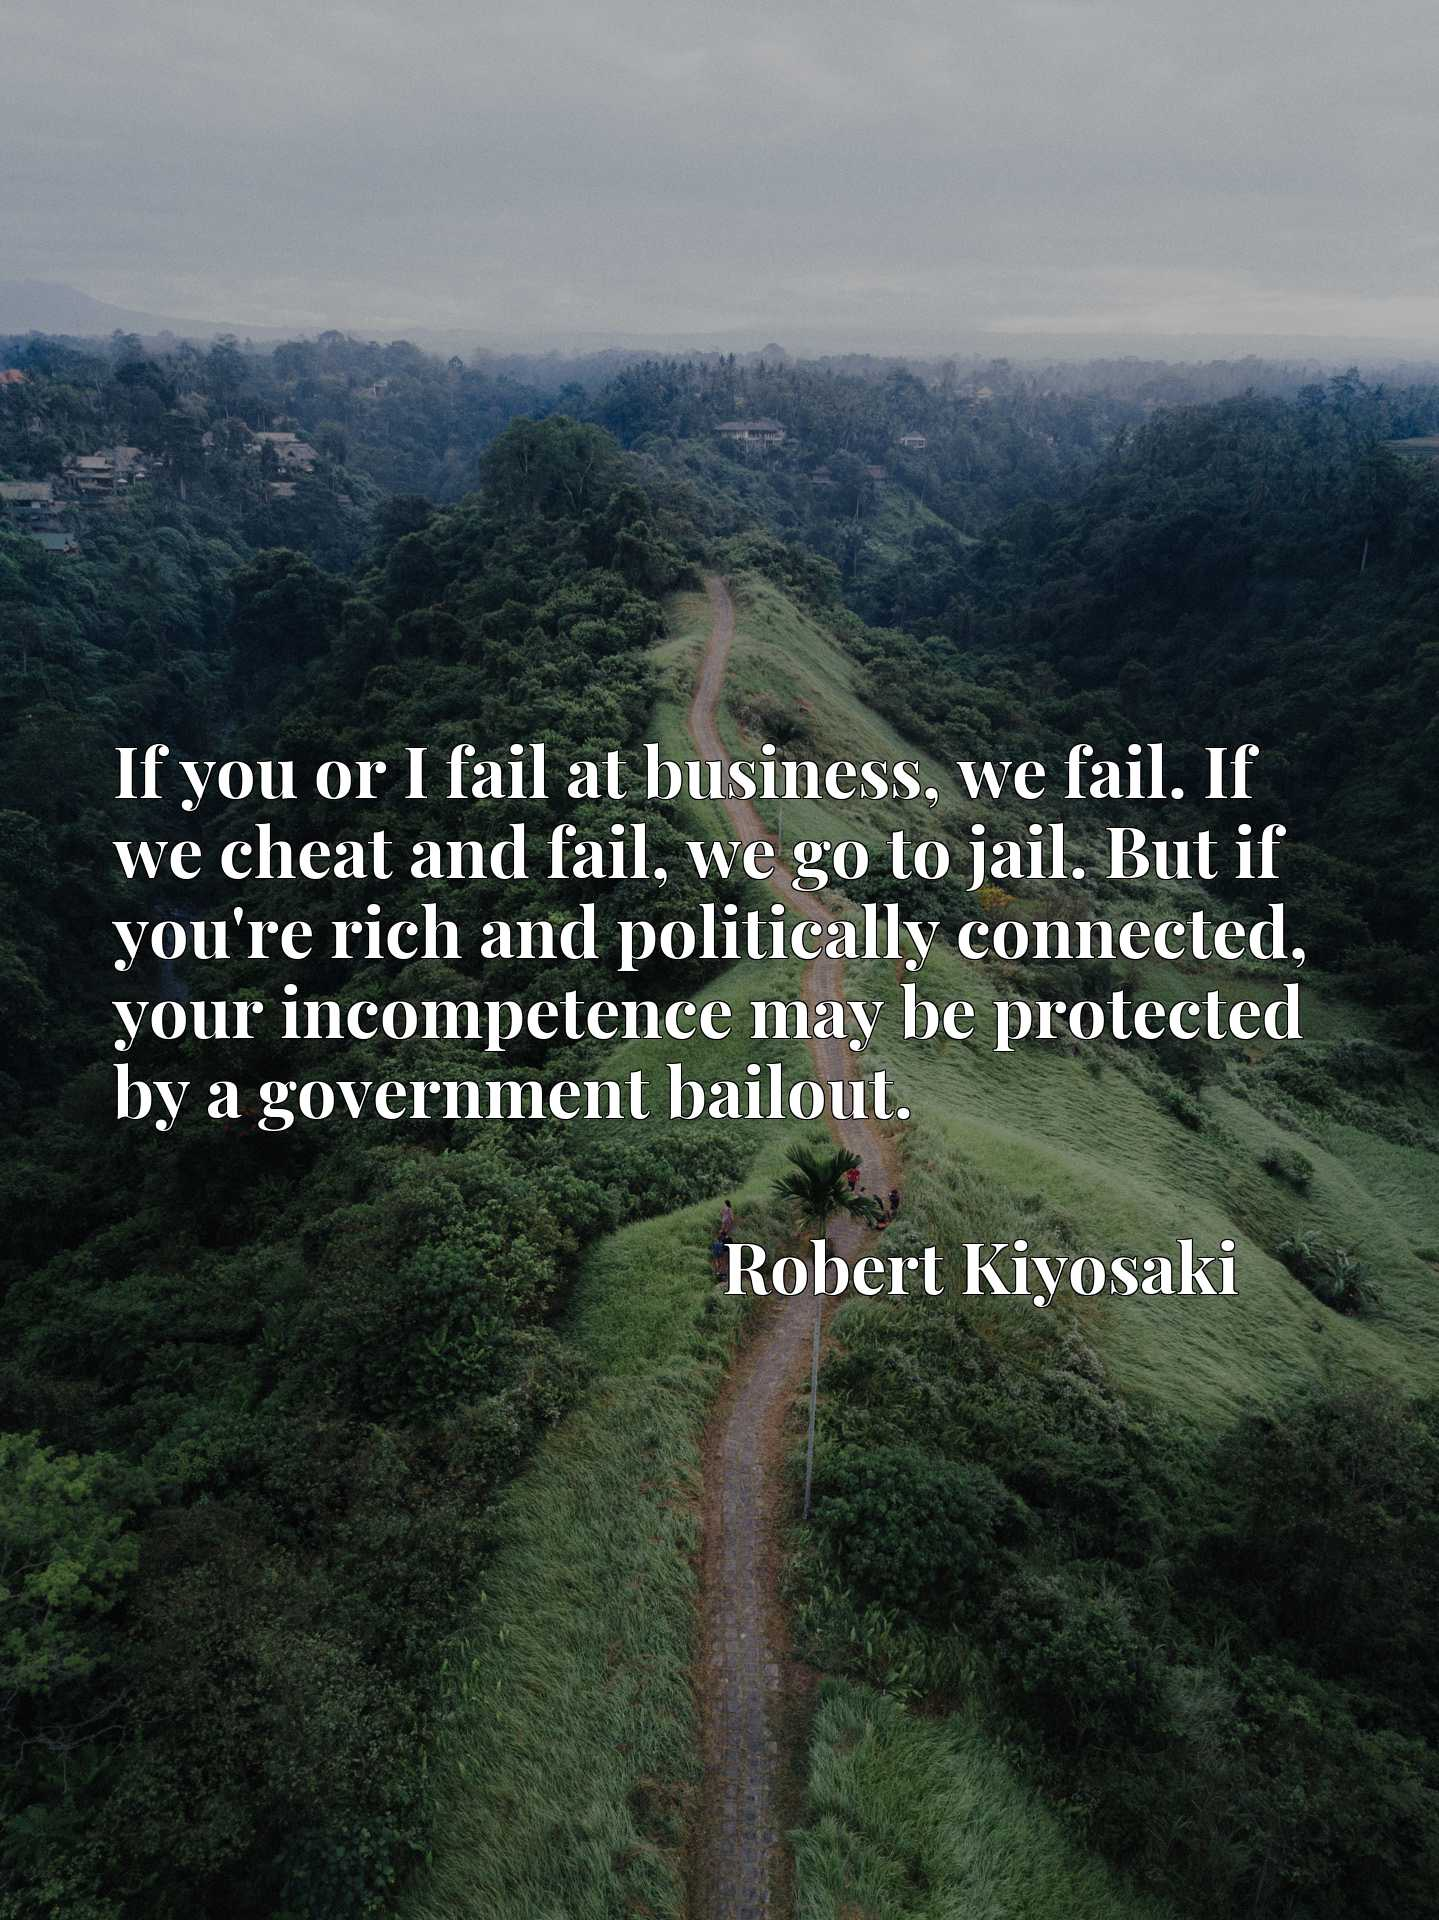 If you or I fail at business, we fail. If we cheat and fail, we go to jail. But if you're rich and politically connected, your incompetence may be protected by a government bailout.